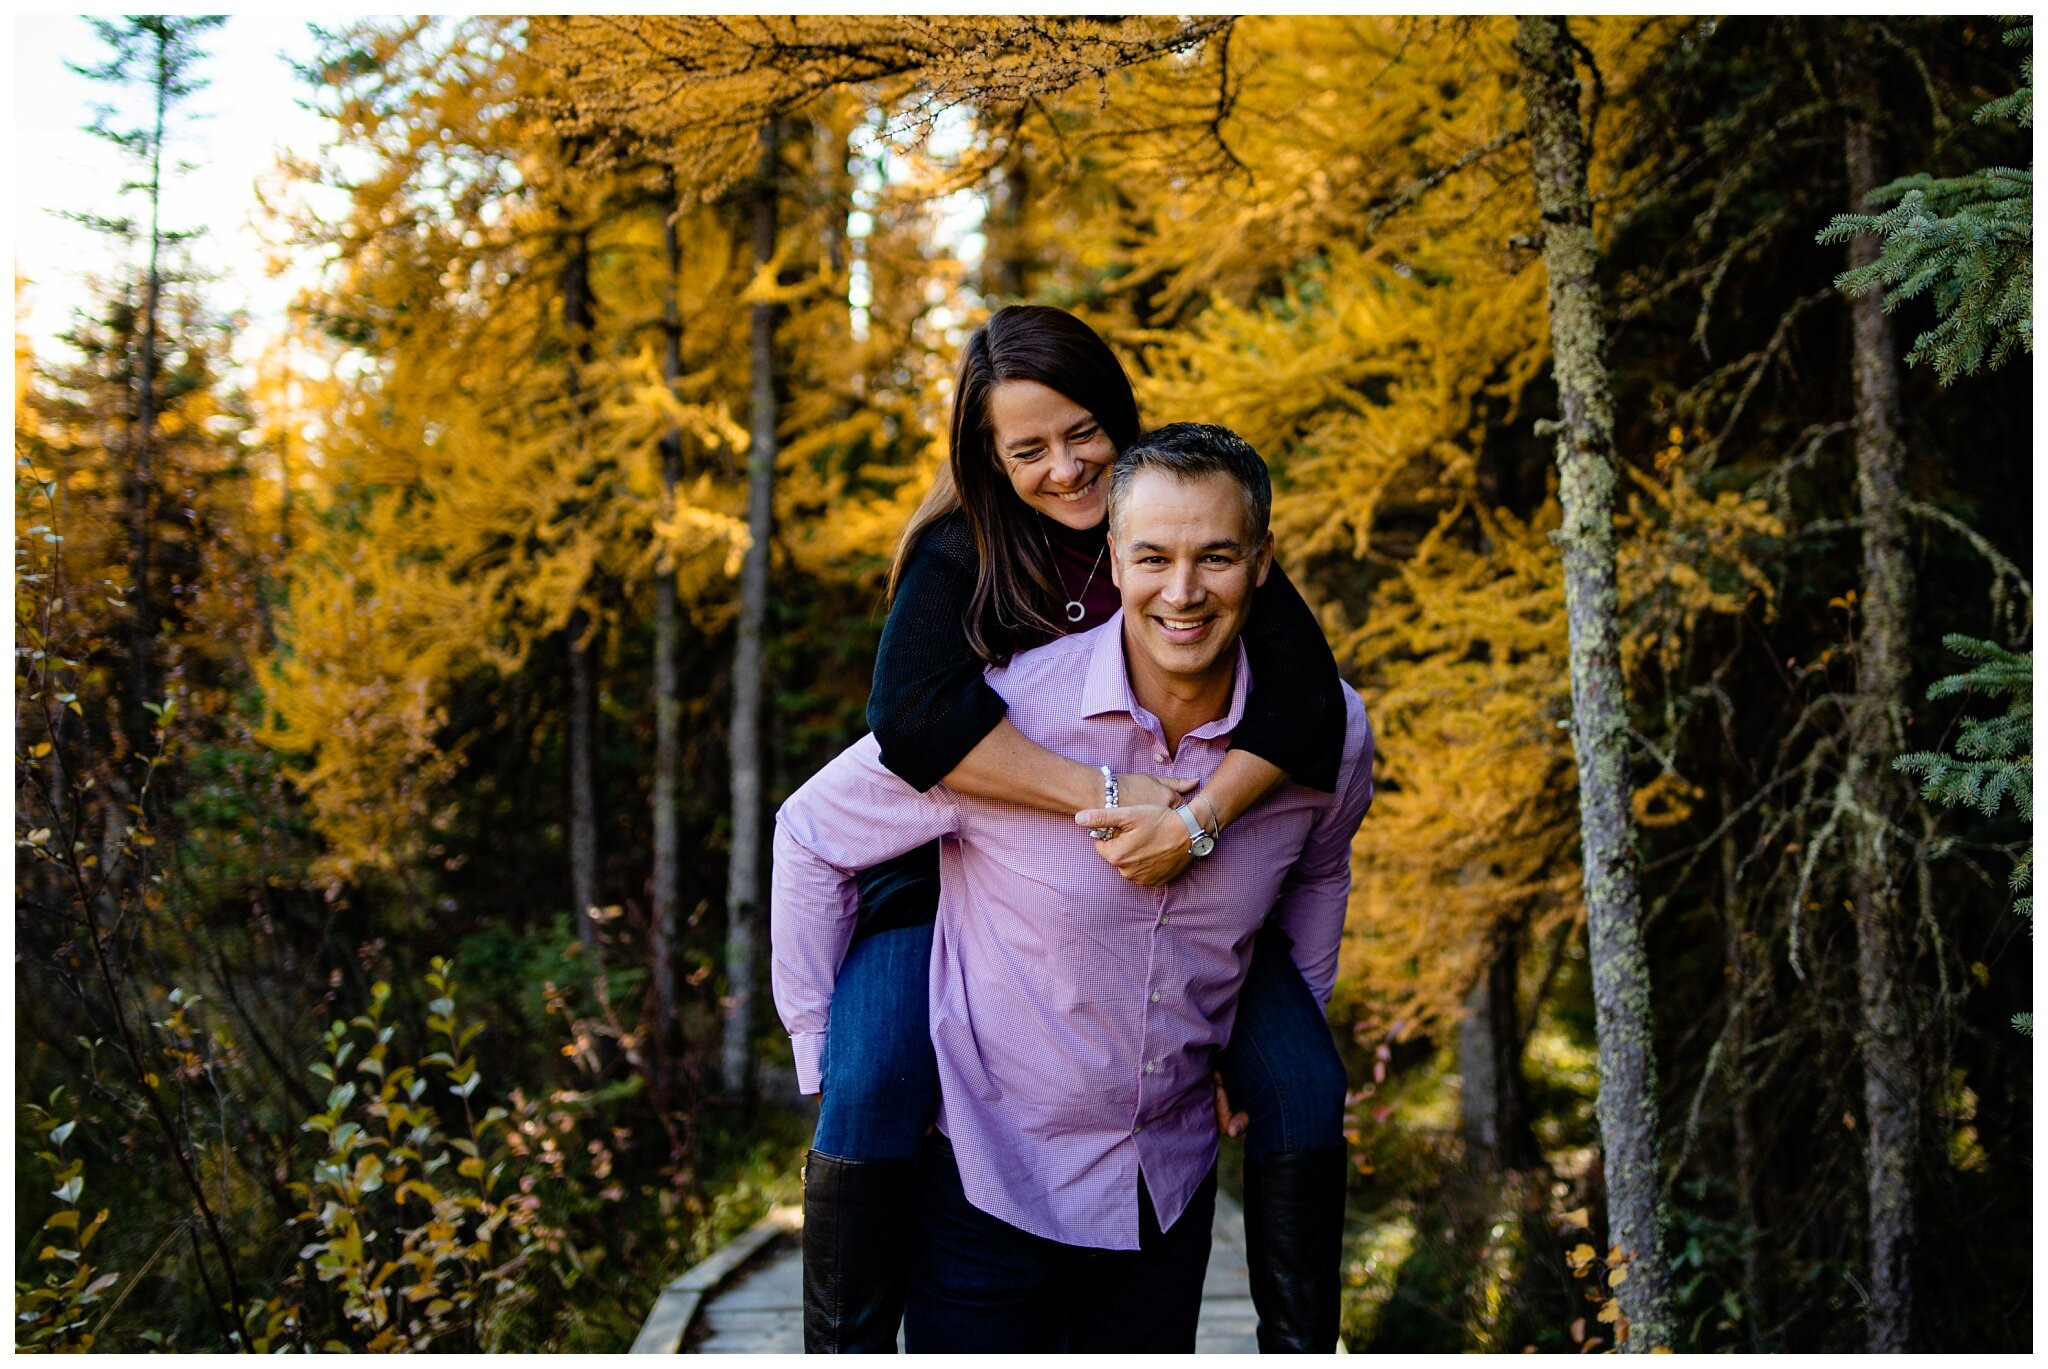 Wagner Natural Area Acheson couples Photographer Alberta  engagement older couple romantic fall photos_0013.jpg